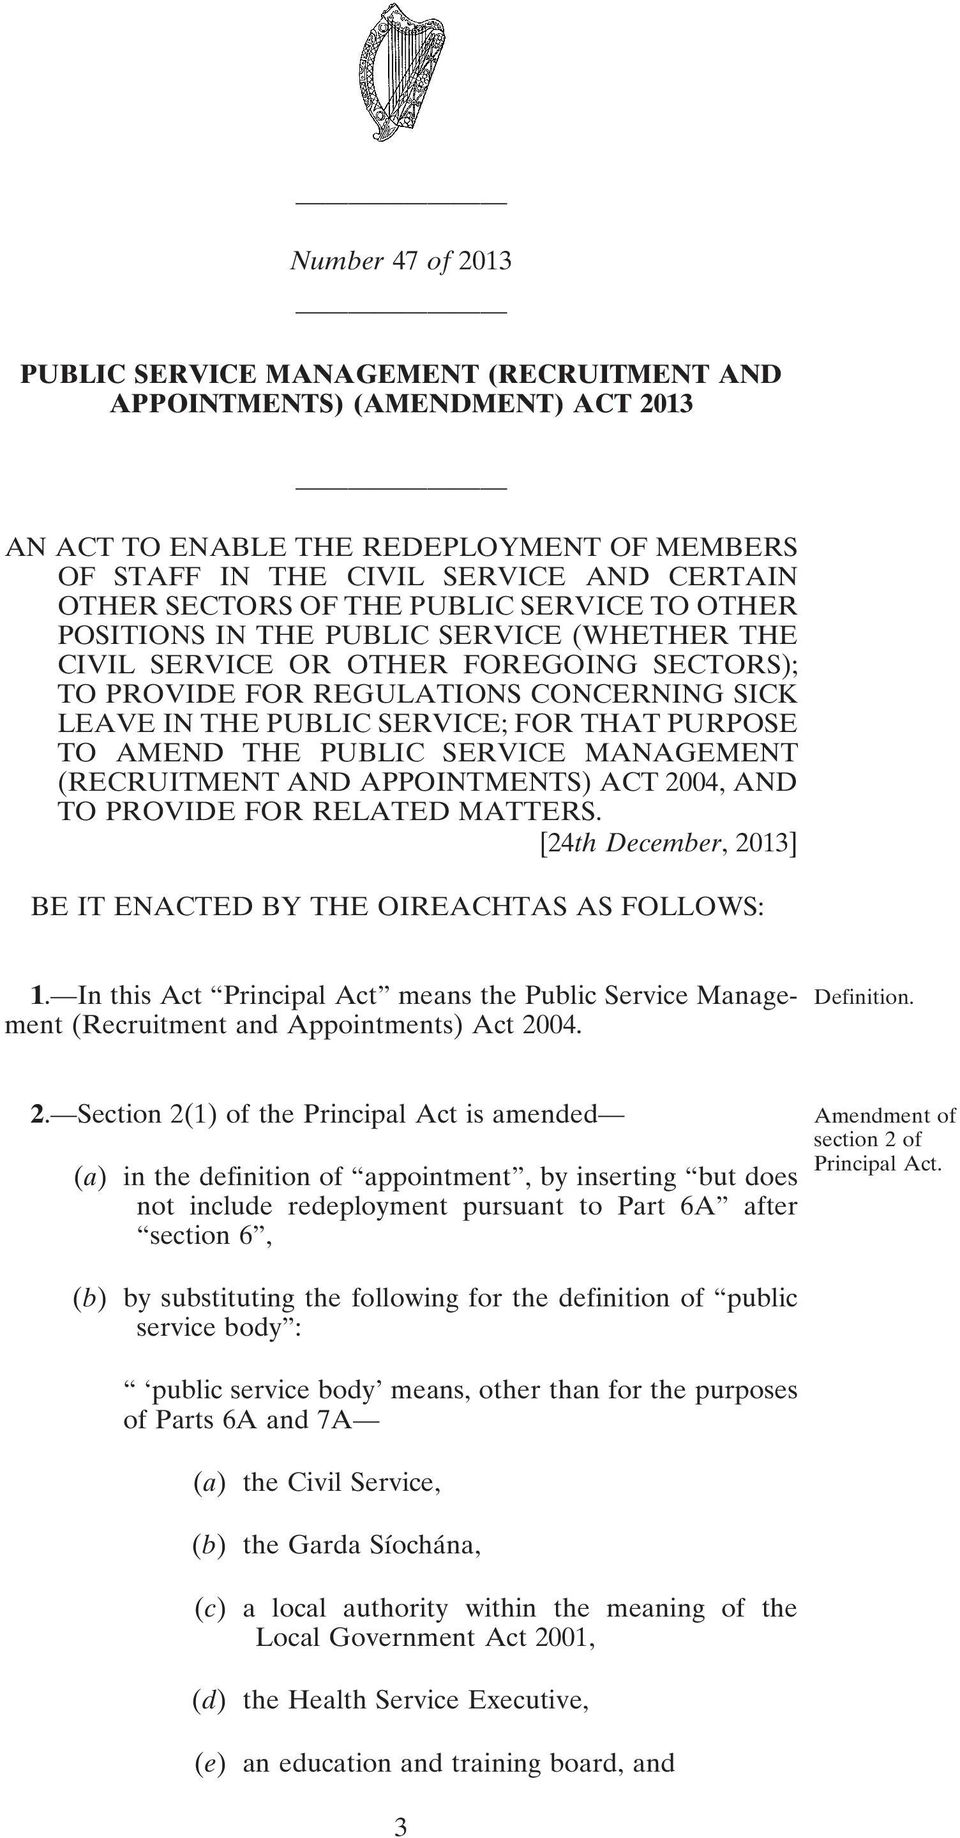 PURPOSE TO AMEND THE PUBLIC SERVICE MANAGEMENT (RECRUITMENT AND APPOINTMENTS) ACT 2004, AND TO PROVIDE FOR RELATED MATTERS. [24th December, 2013] BE IT ENACTED BY THE OIREACHTAS AS FOLLOWS: 1.